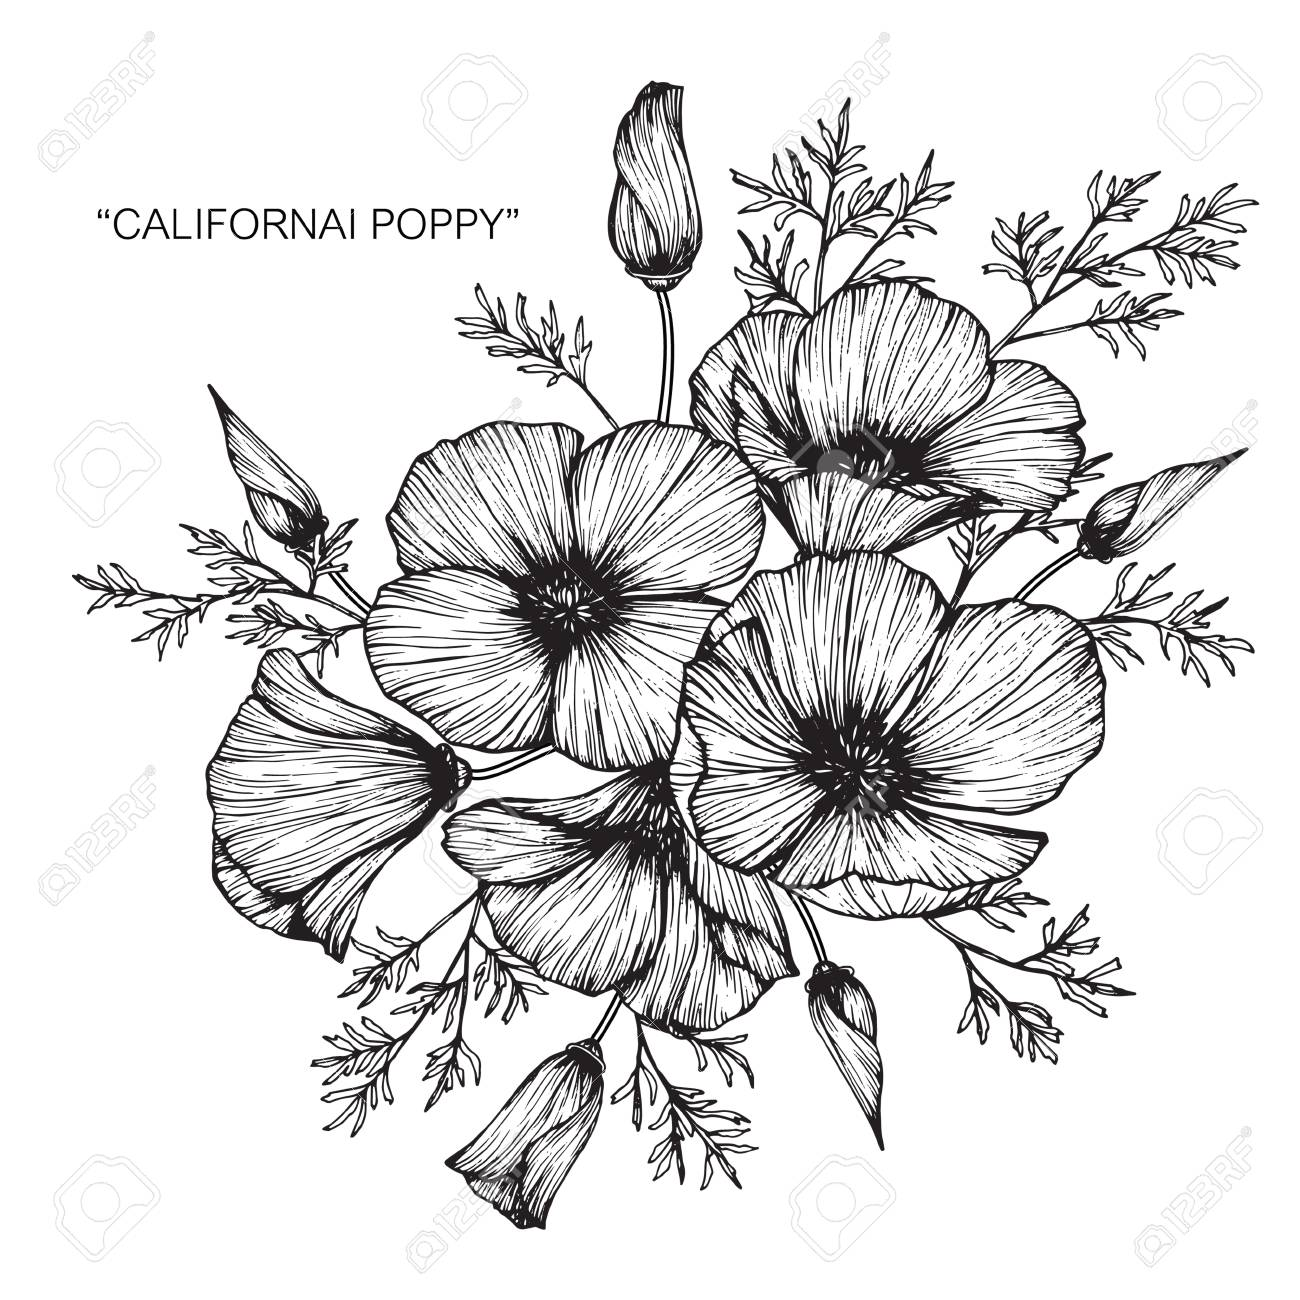 California poppy flower drawing royalty free cliparts vectors and california poppy flower drawing stock vector 88417575 mightylinksfo